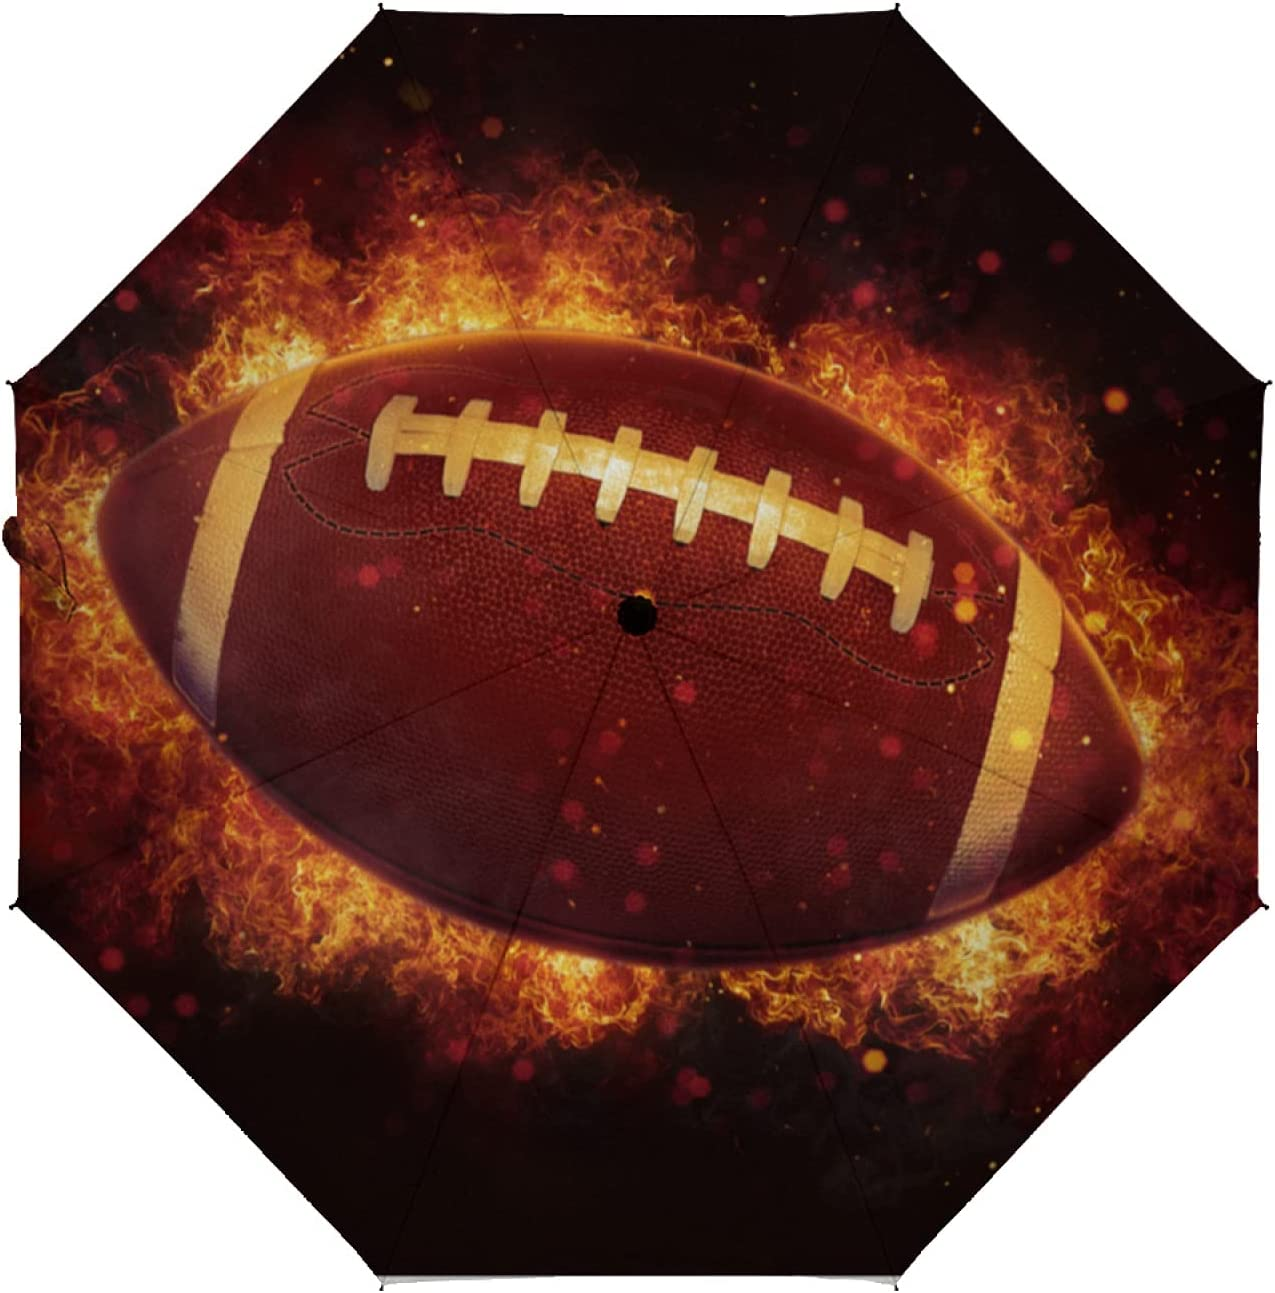 ZXZNC Golf Umbrella New Orleans Mall Flying American Ball Football Discount mail order Burning Flames